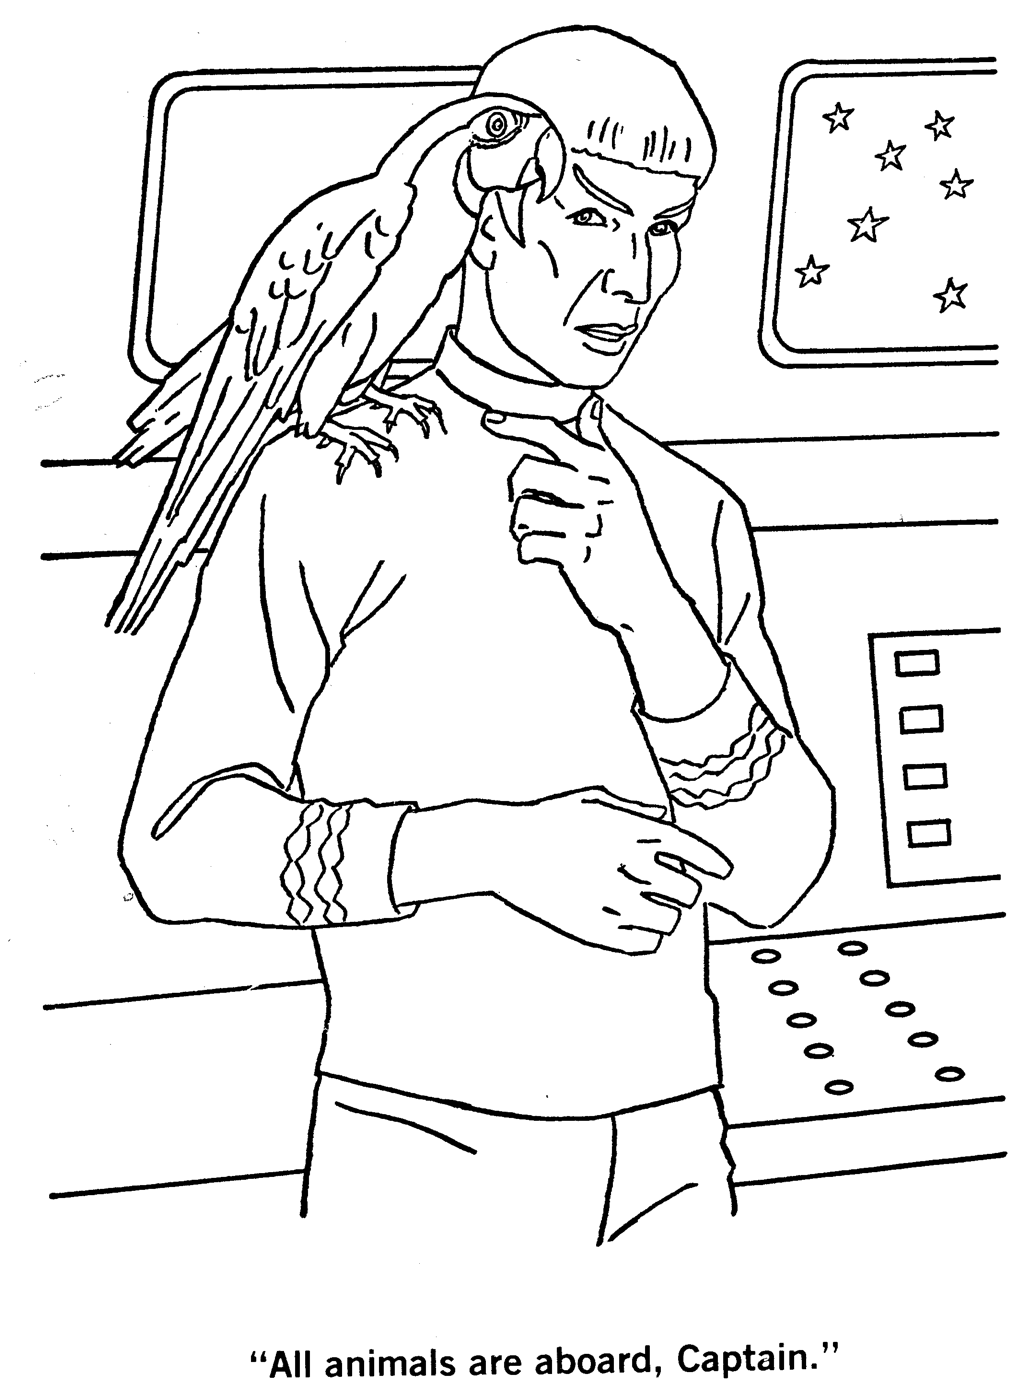 Star Trek Coloring Pages Star Trek The Colorin Coloring Pages